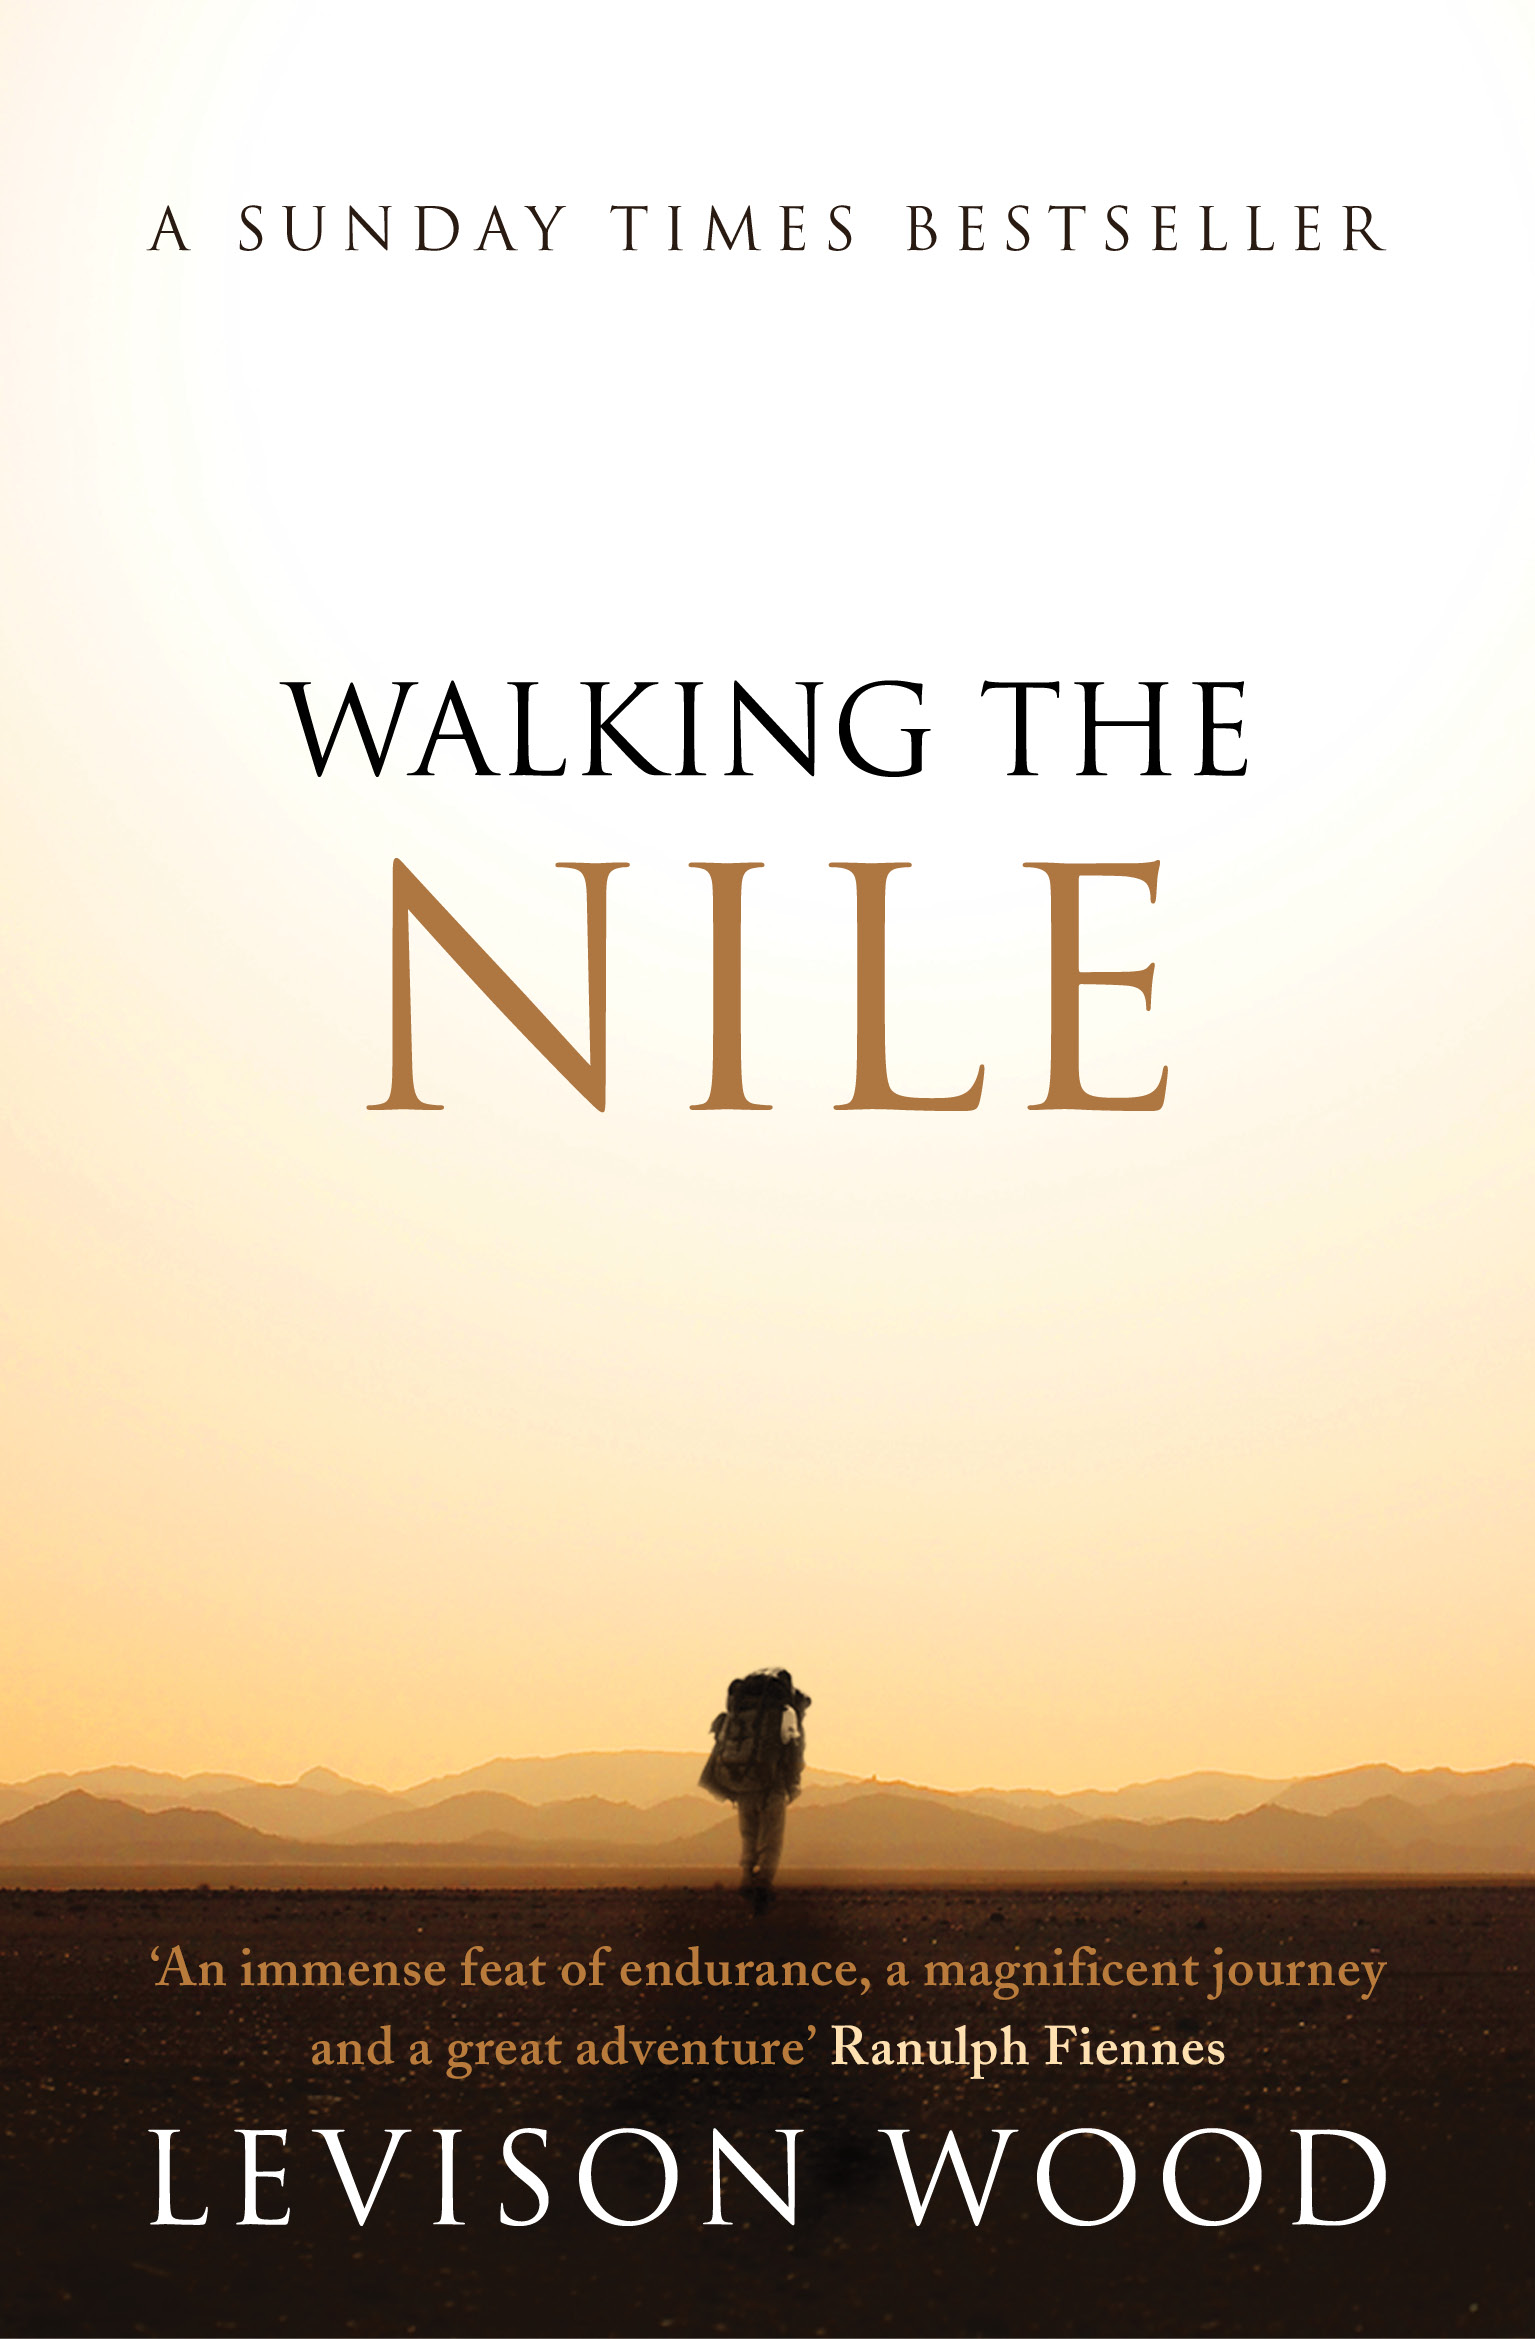 Walking The Nile, published by Simon & Schuster, available in paperback  here.